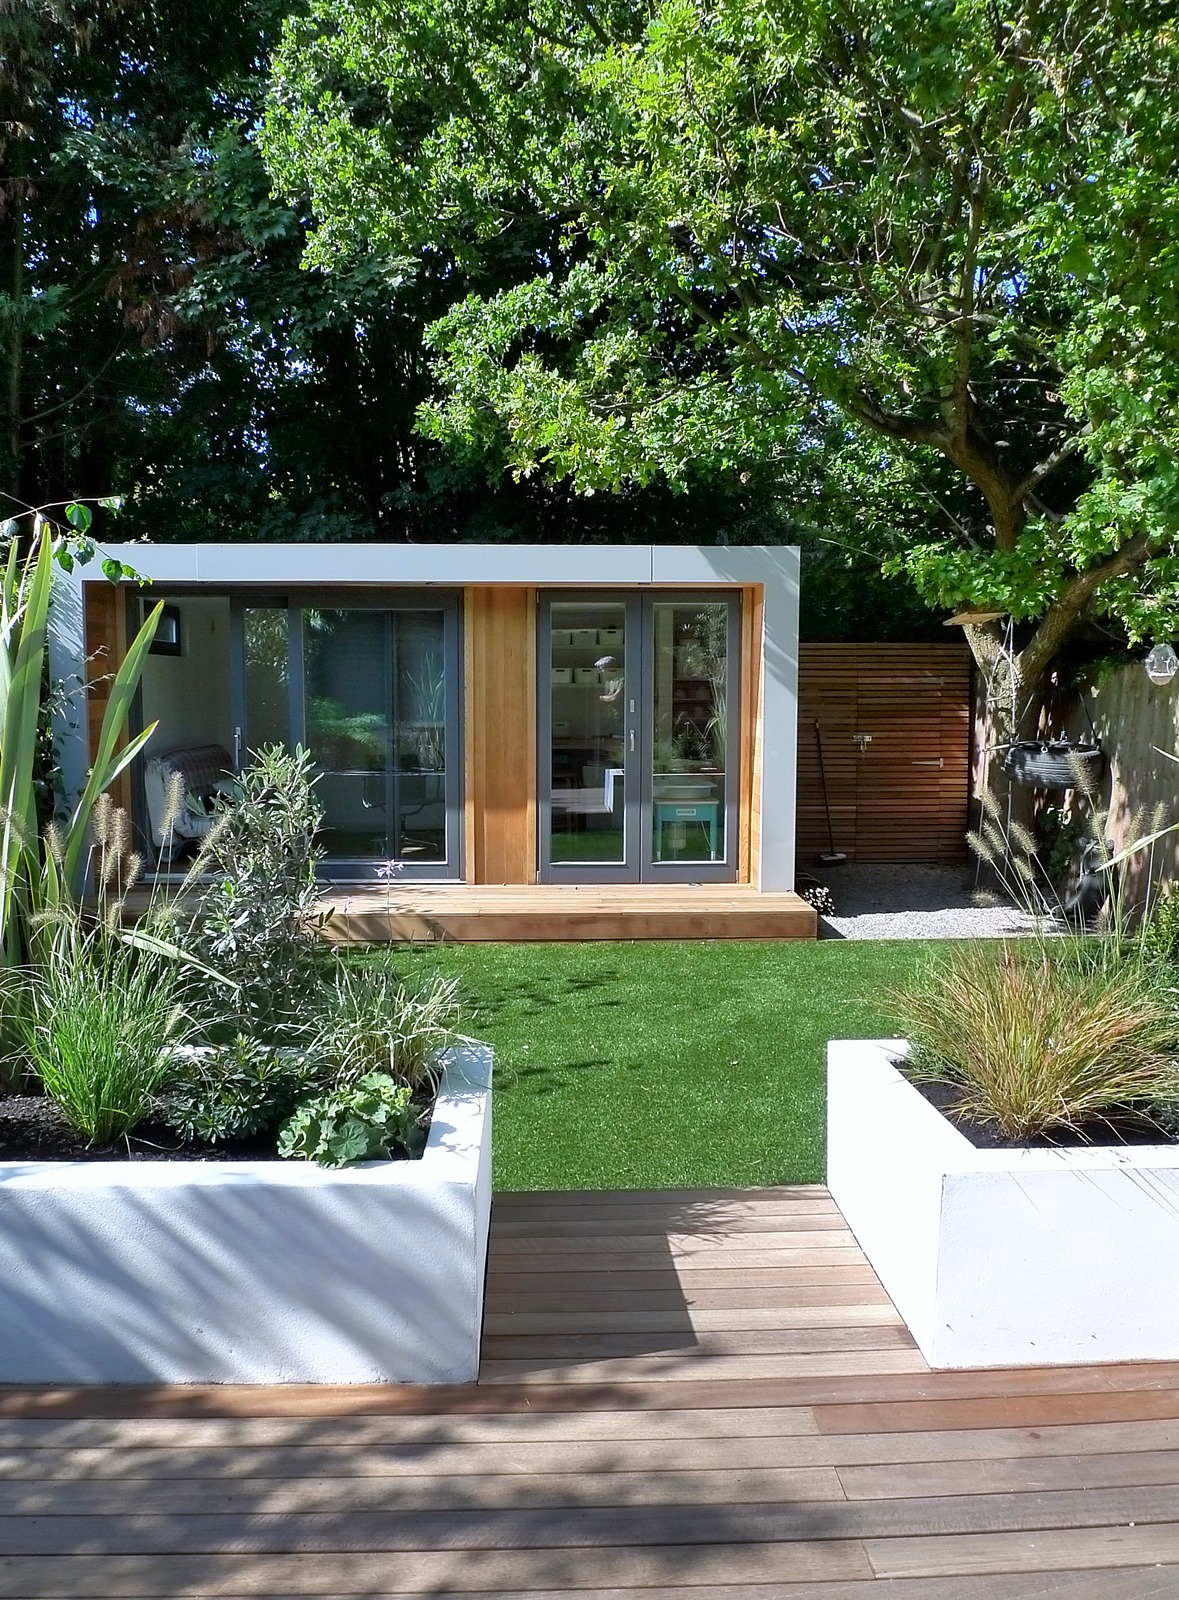 clapham and balham modern garden design decking planting artificial lawn grass hardwood privacy screen indoor outdoor space (9)